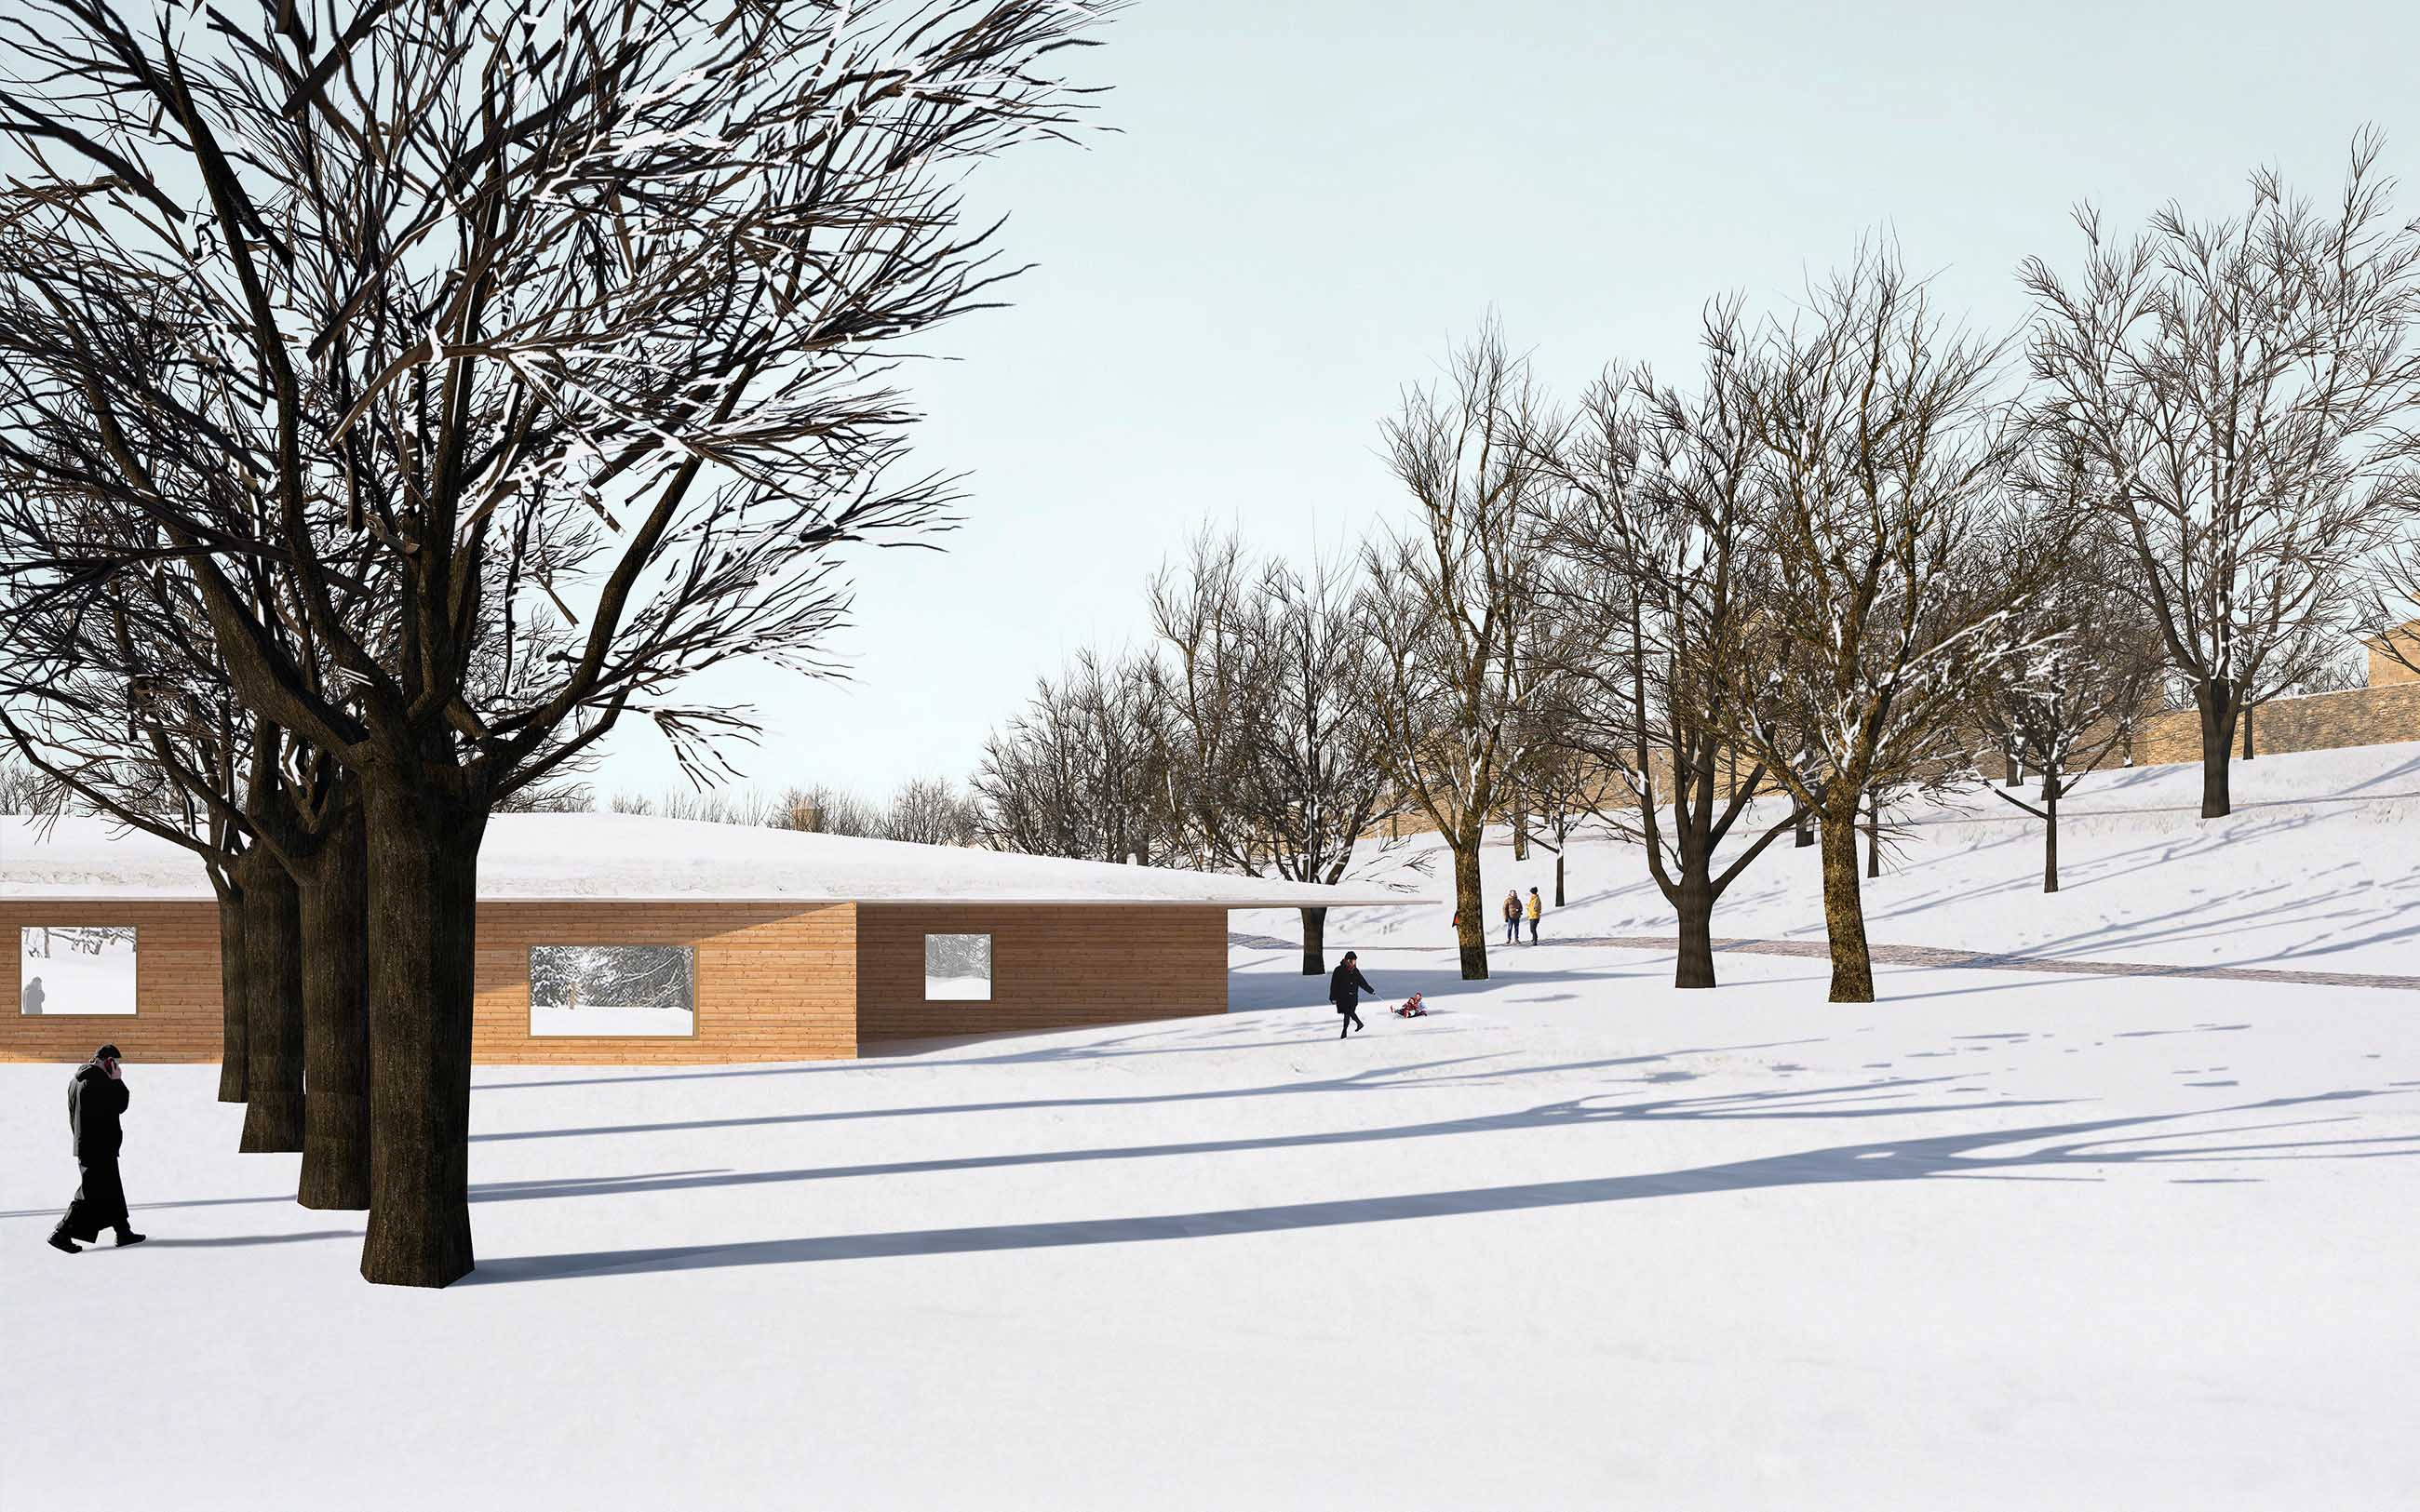 2_About Architecture_Nikozi 2nd prize